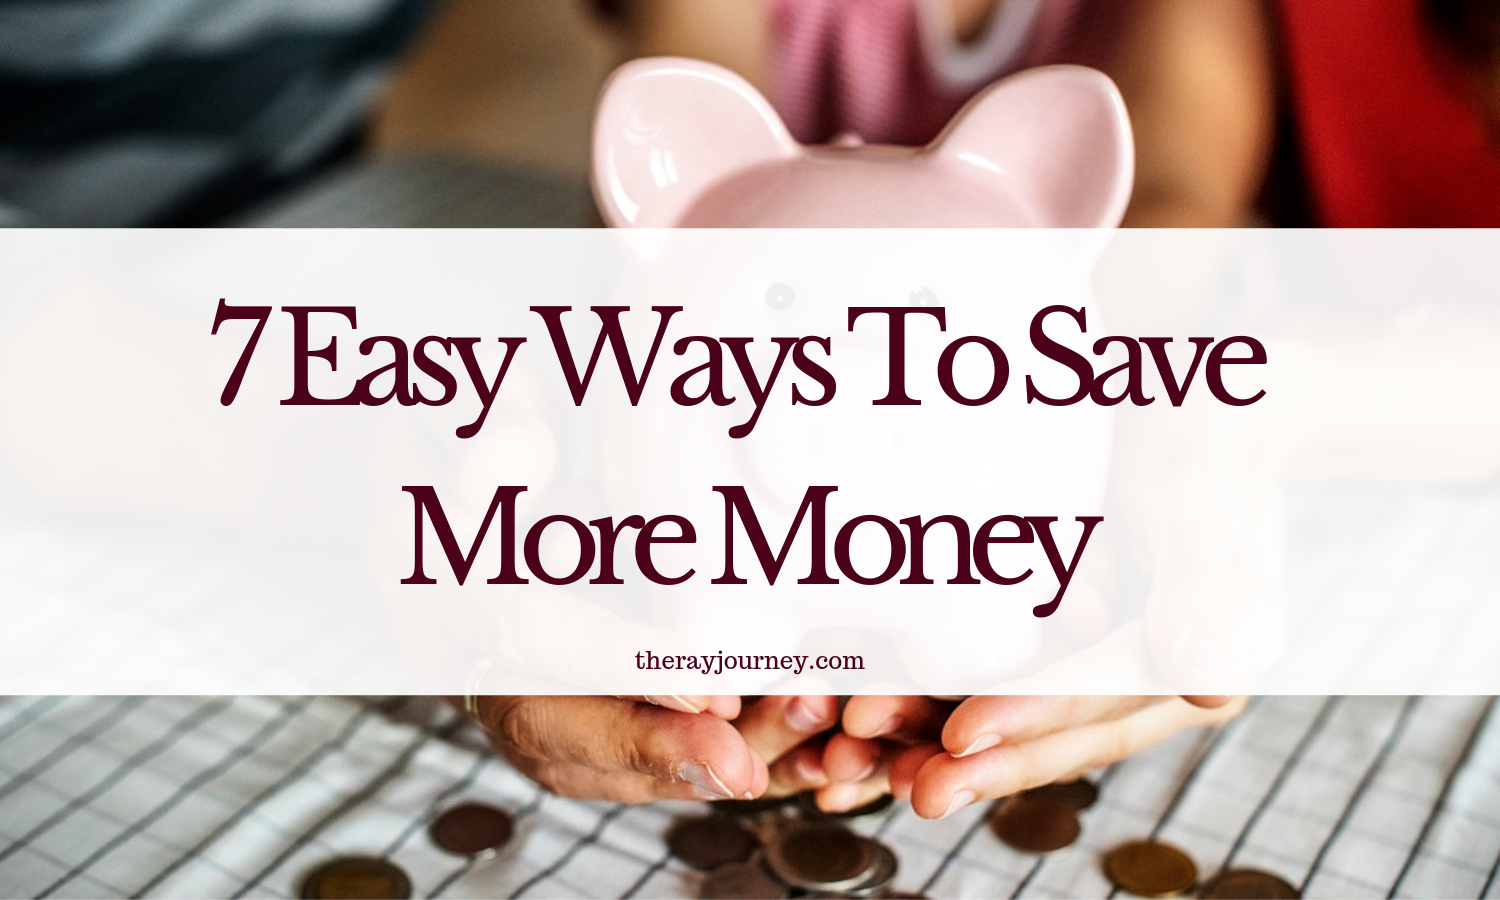 7 Easy Ways To Save More Money